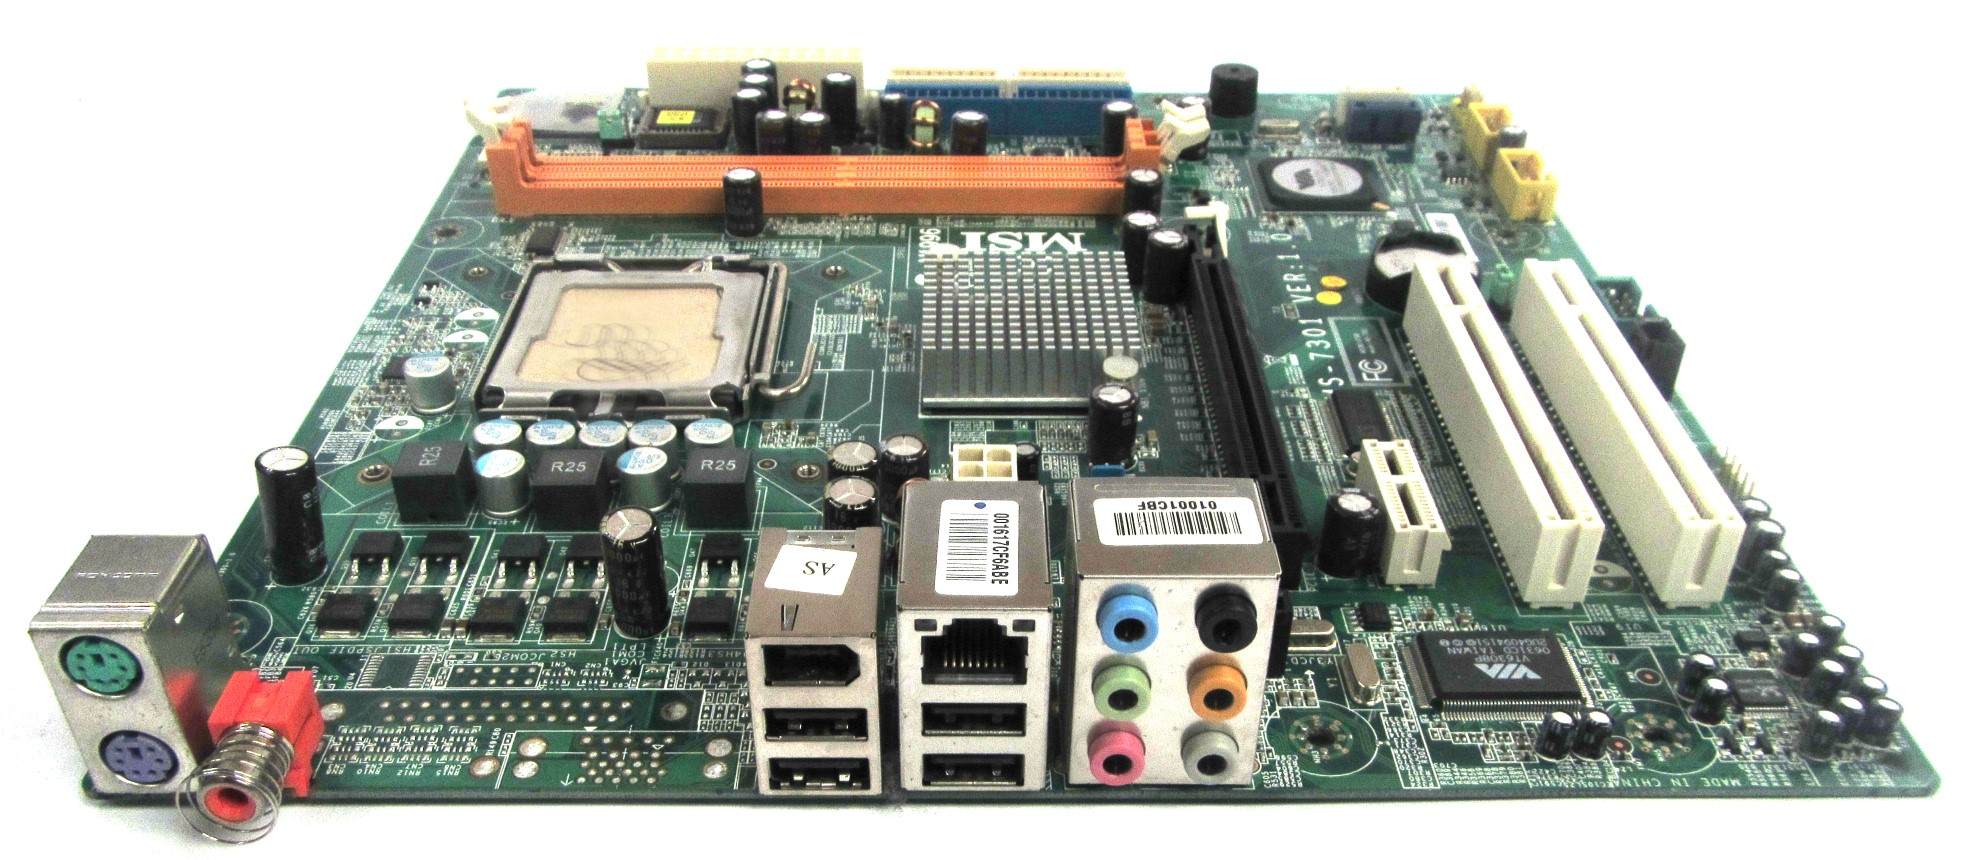 CUBA MSI MS-7301 MOTHERBOARD WINDOWS 7 X64 DRIVER DOWNLOAD